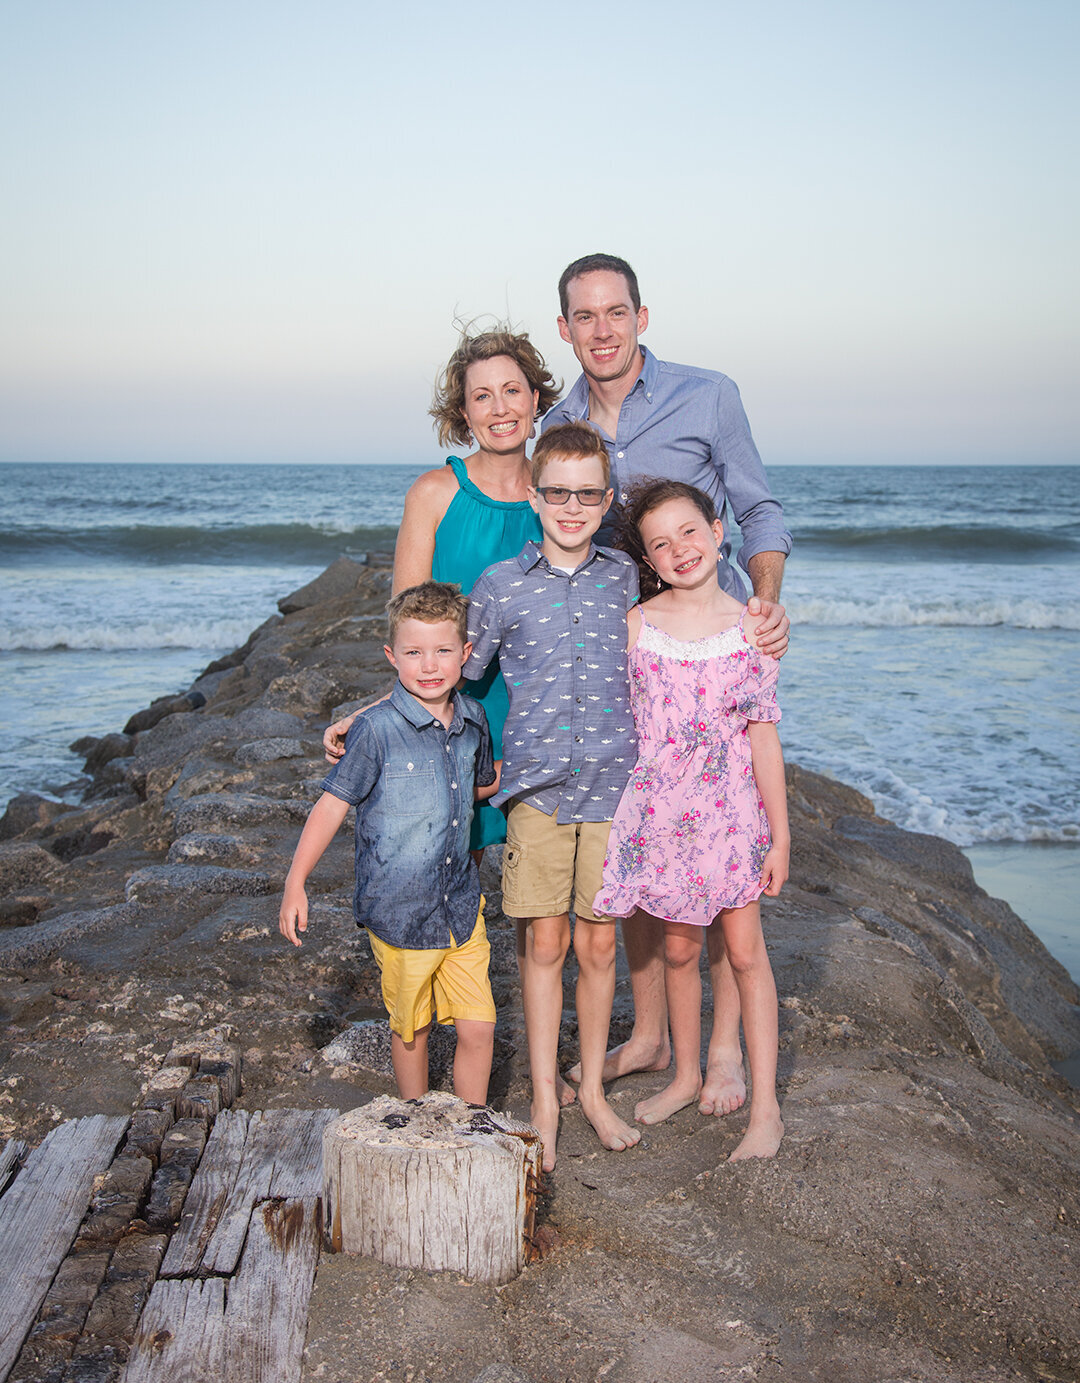 surfside beach family portraits (6)